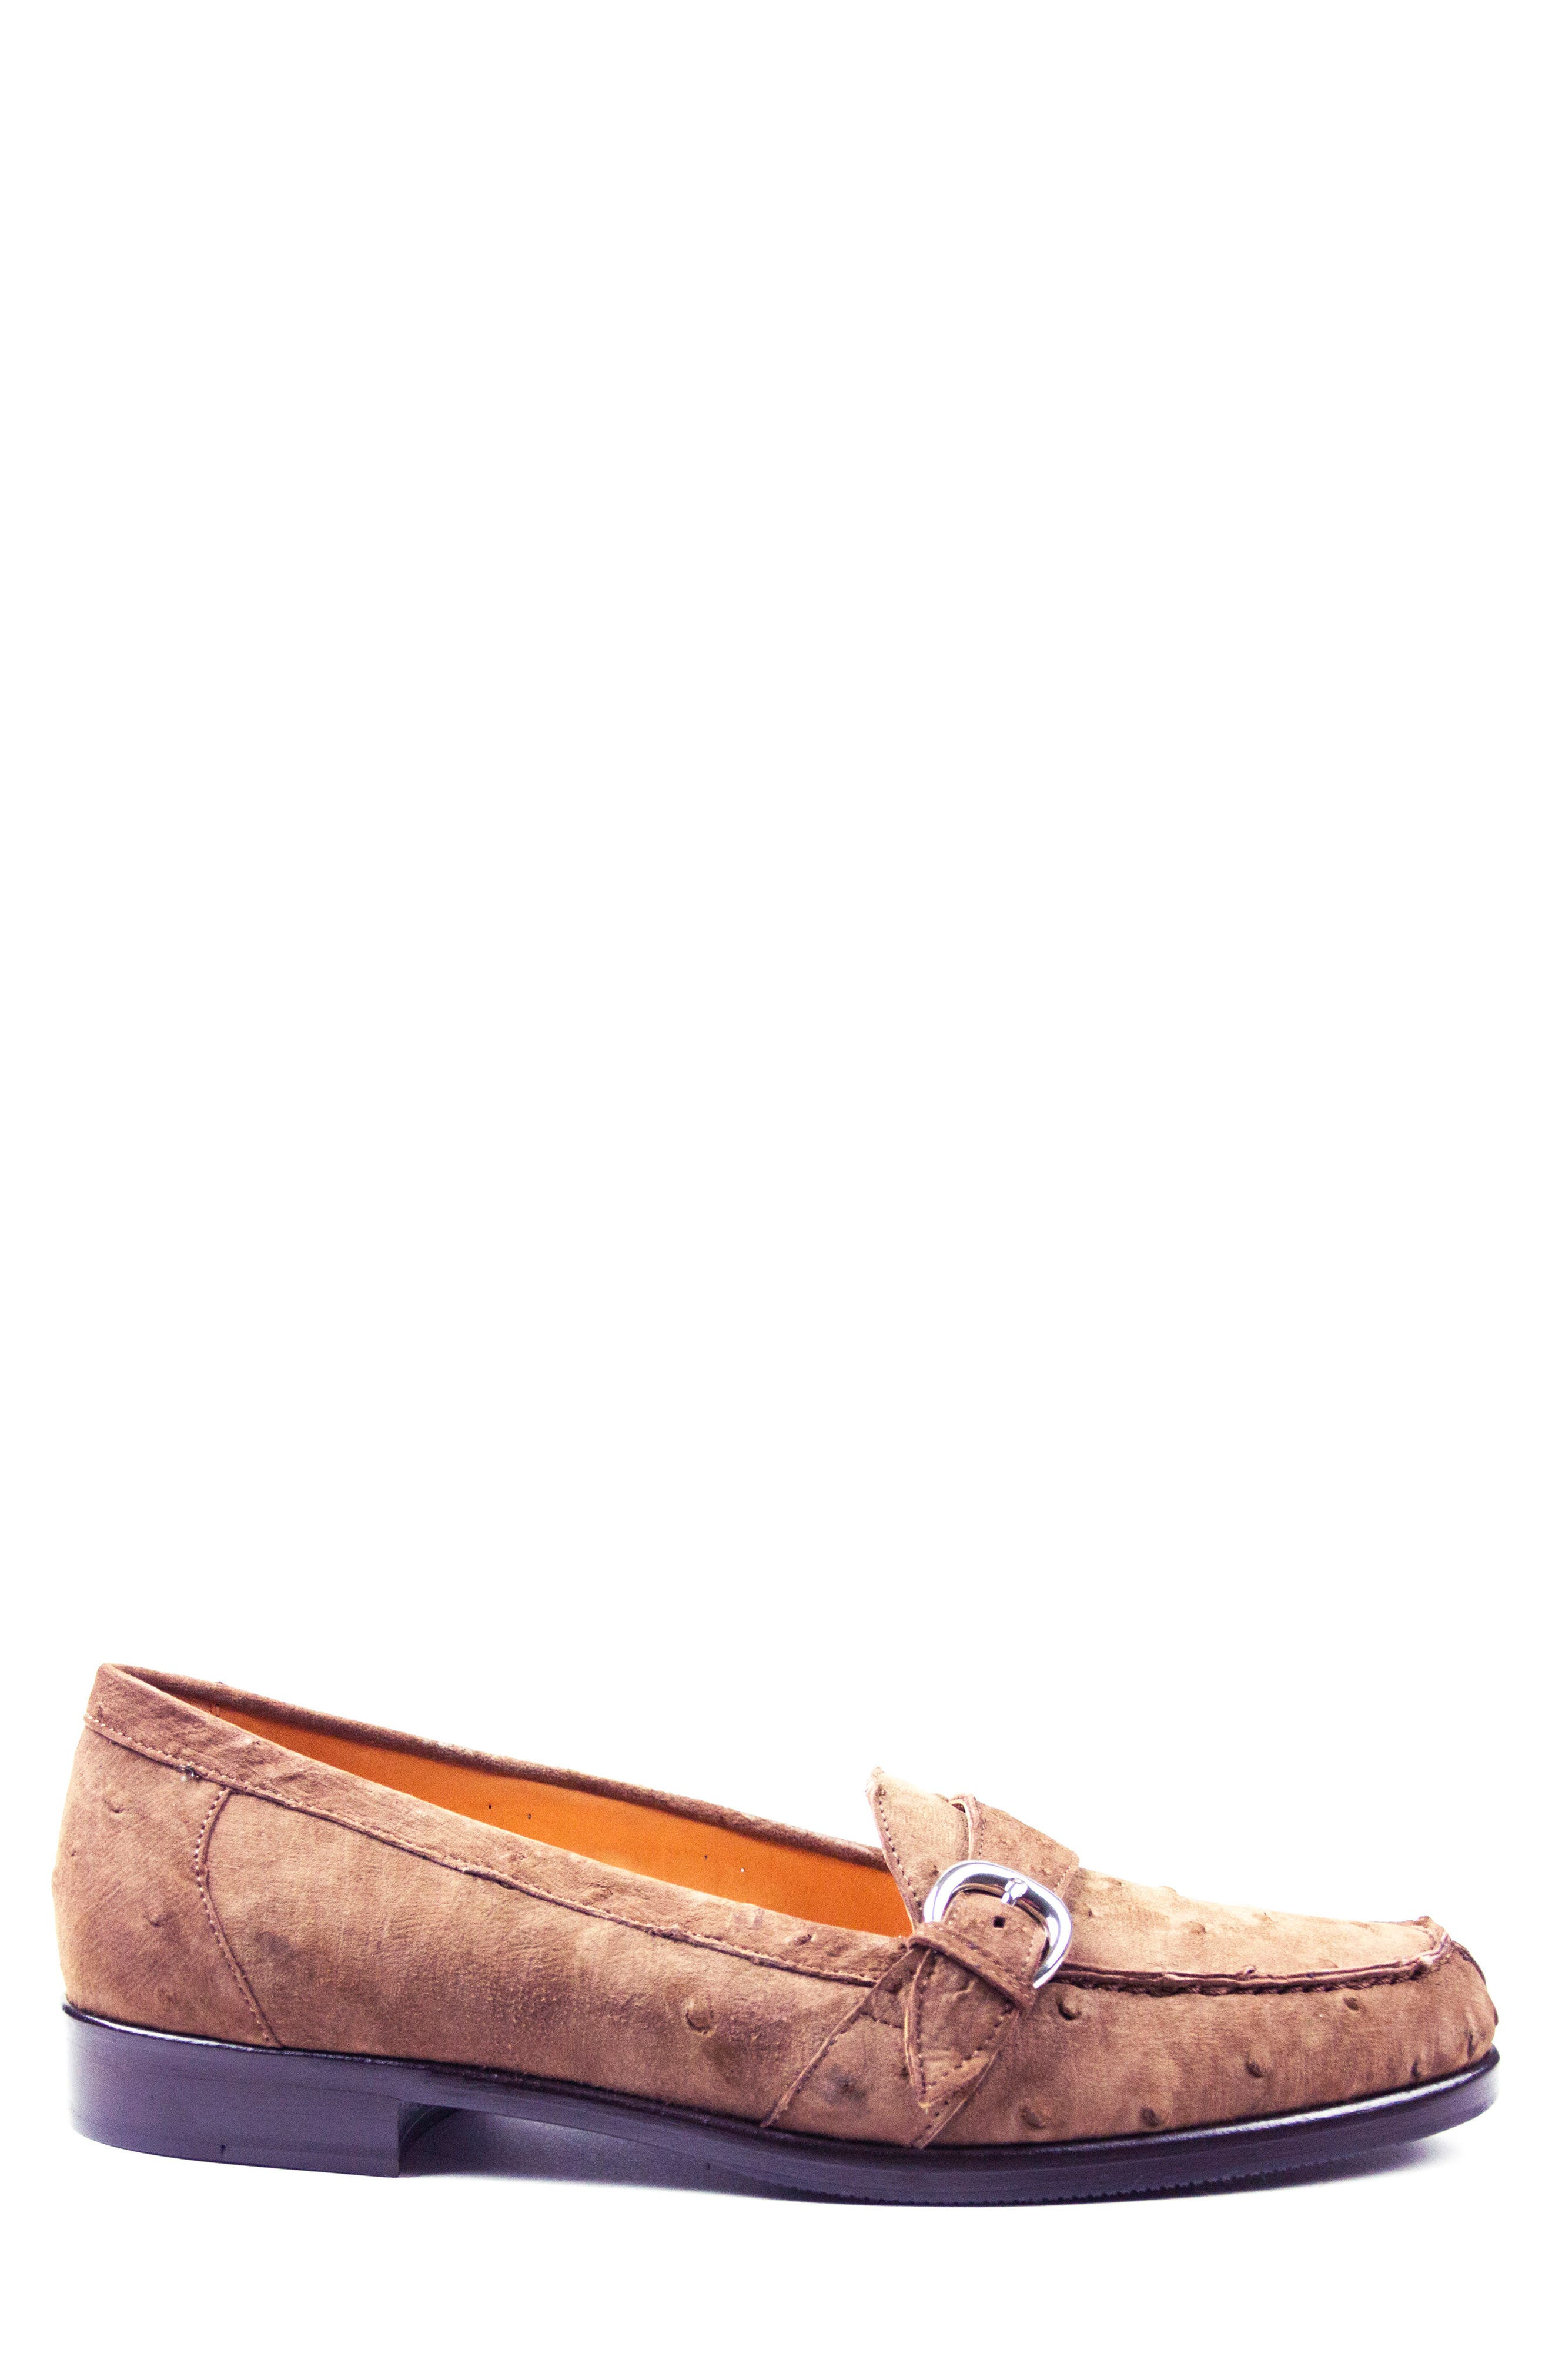 Orlando Teju Ostrich Loafer,                             Alternate thumbnail 3, color,                             Brown